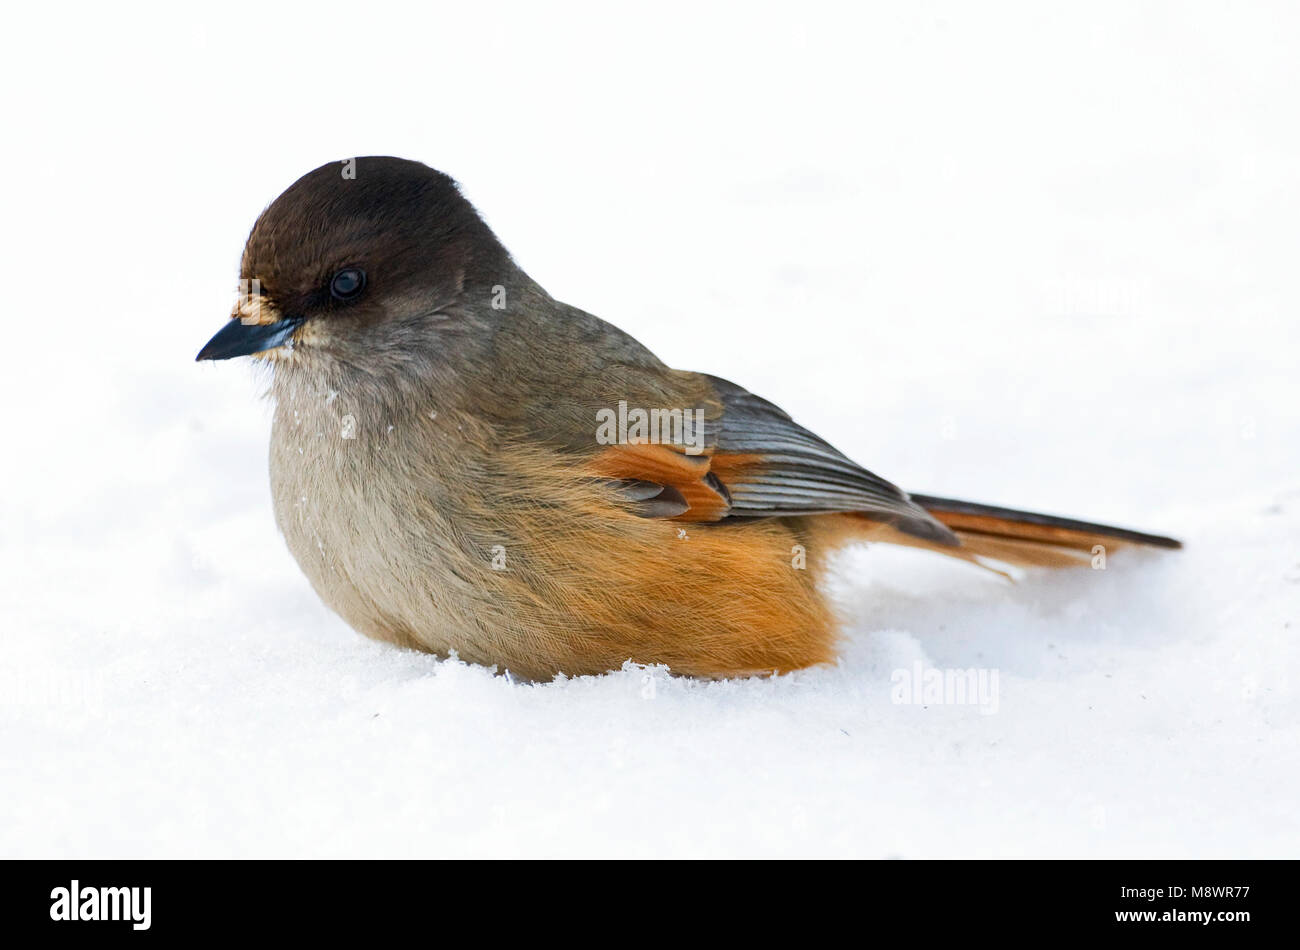 Taigagaai, Siberian Jay Stock Photo